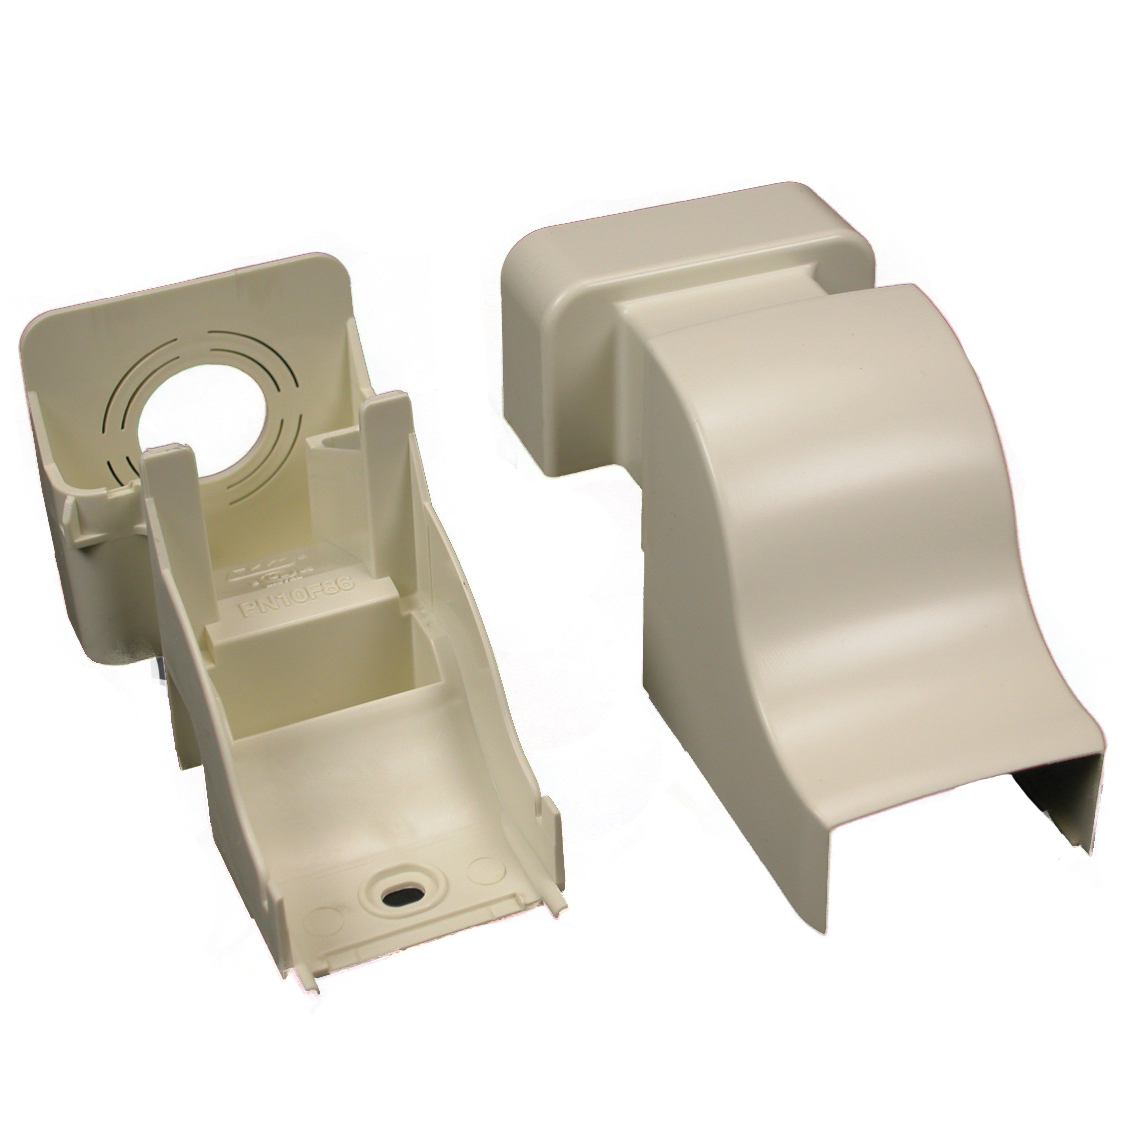 Eclipse™ PN03, PN05, PN10 Series Drop Ceiling Connector